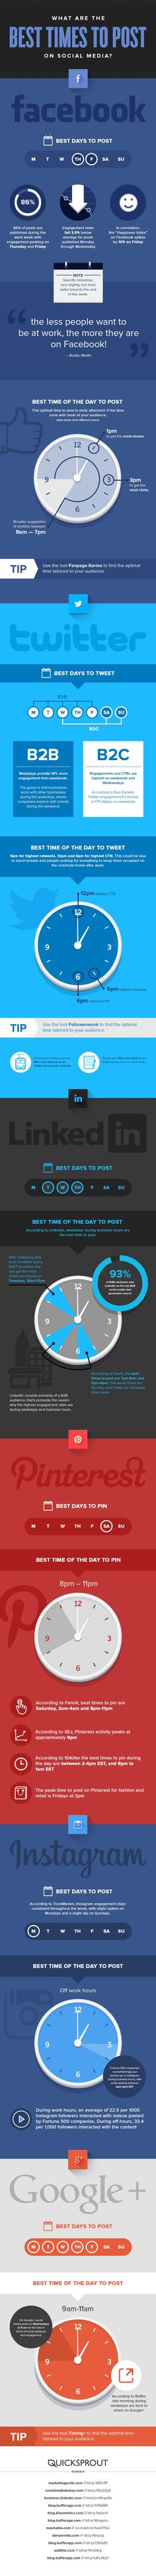 What Are The Best Times to Post on Social Media. Great stuff for those trying to grow an online business.